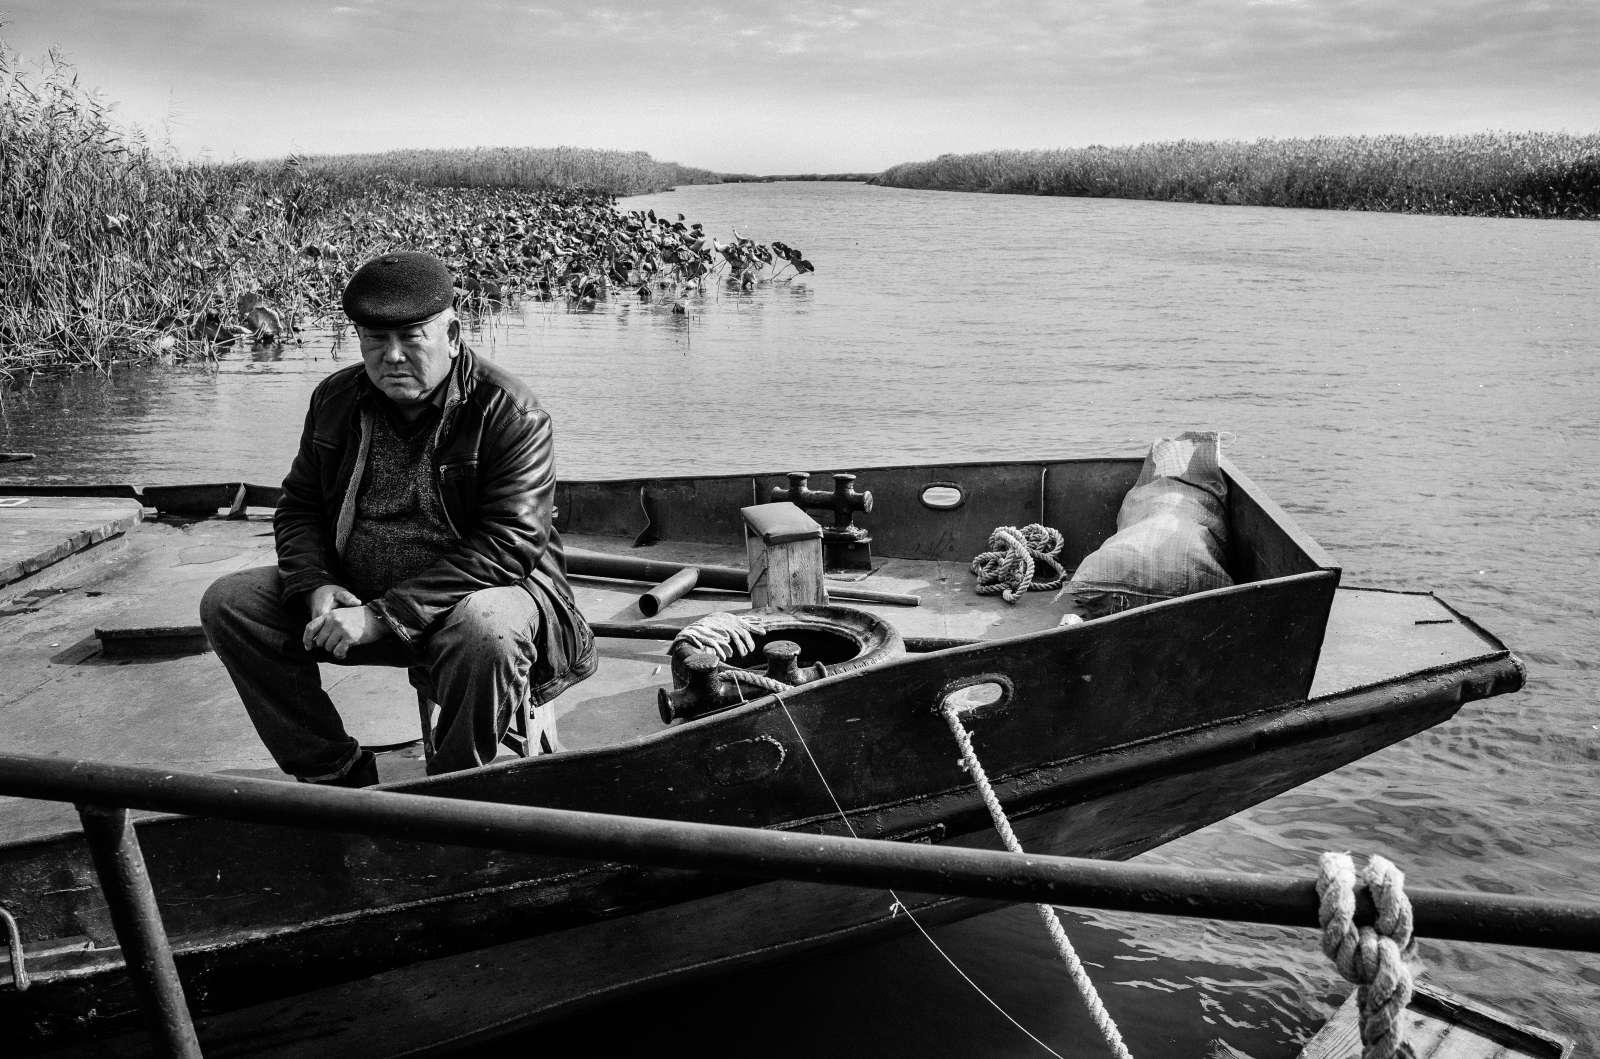 Fatih - The Capitan of a fish ship is waiting for the fishermen to bring fish. October 2016 Kirovsky, Astrakhan Disctrict. Russia. © Stoyan Vassev